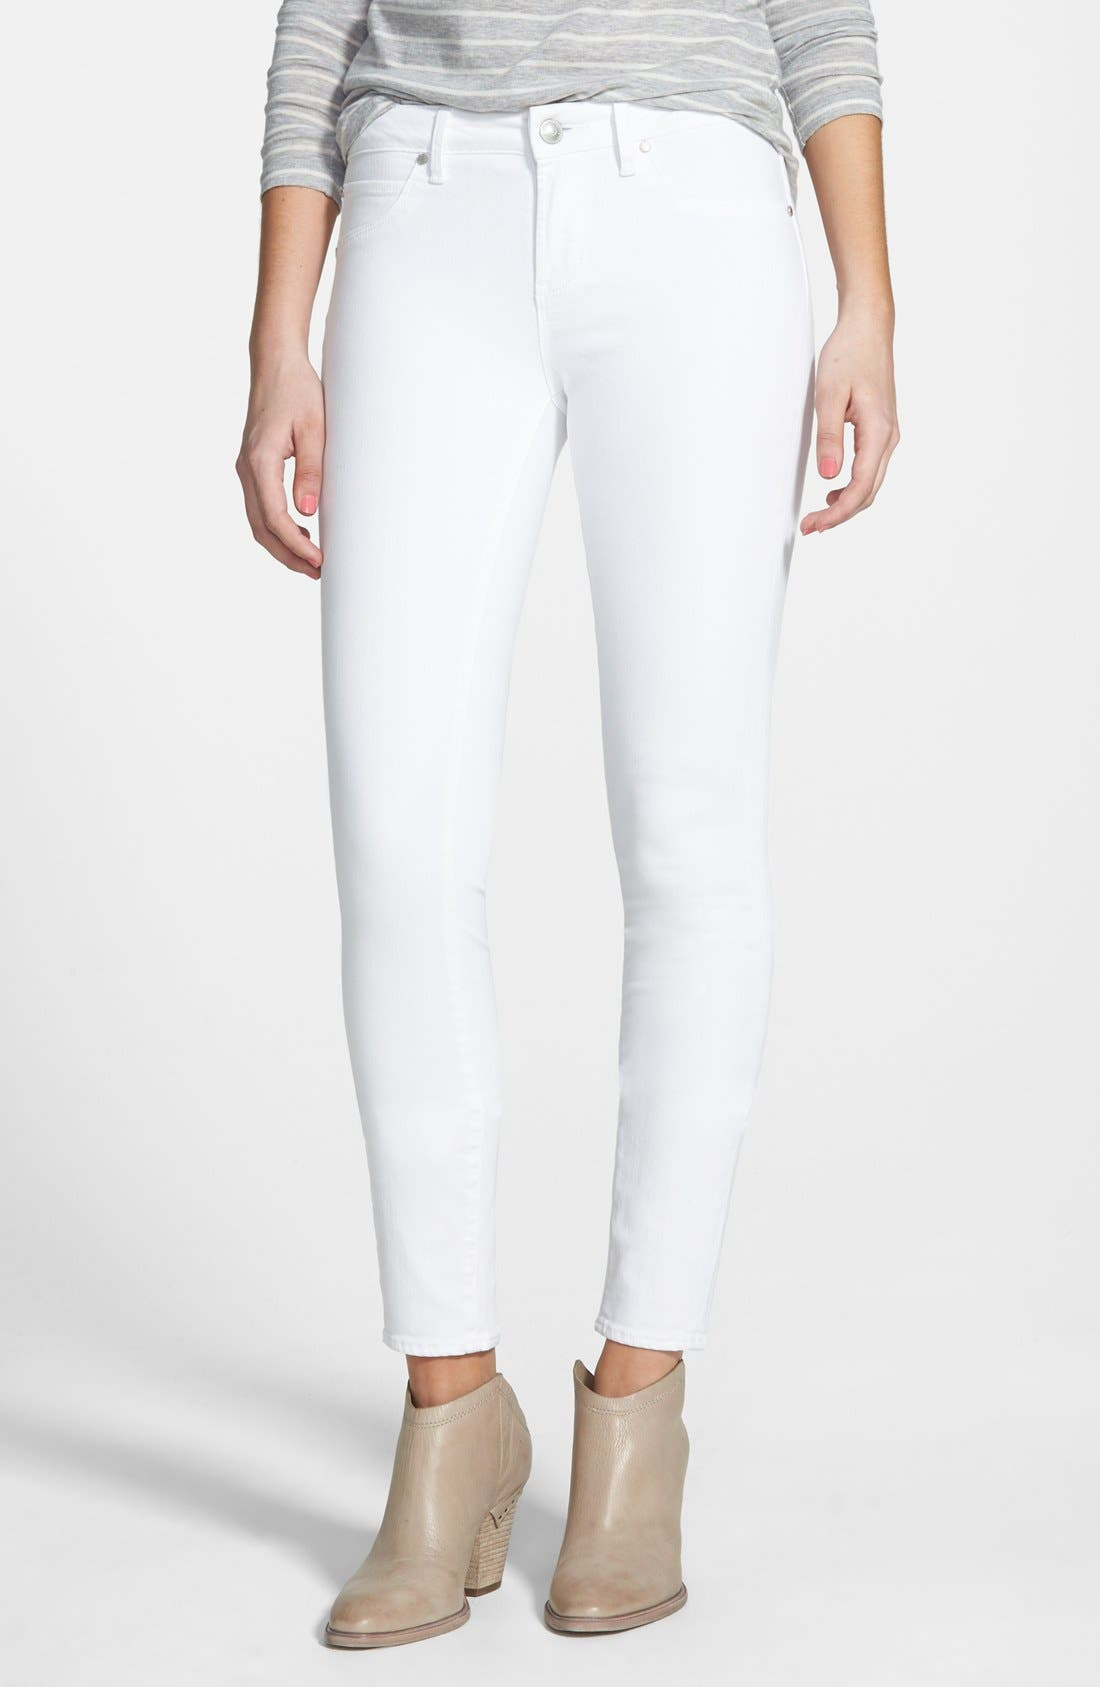 Alternate Image 1 Selected - Articles of Society 'Sarah' Skinny Jeans (White)